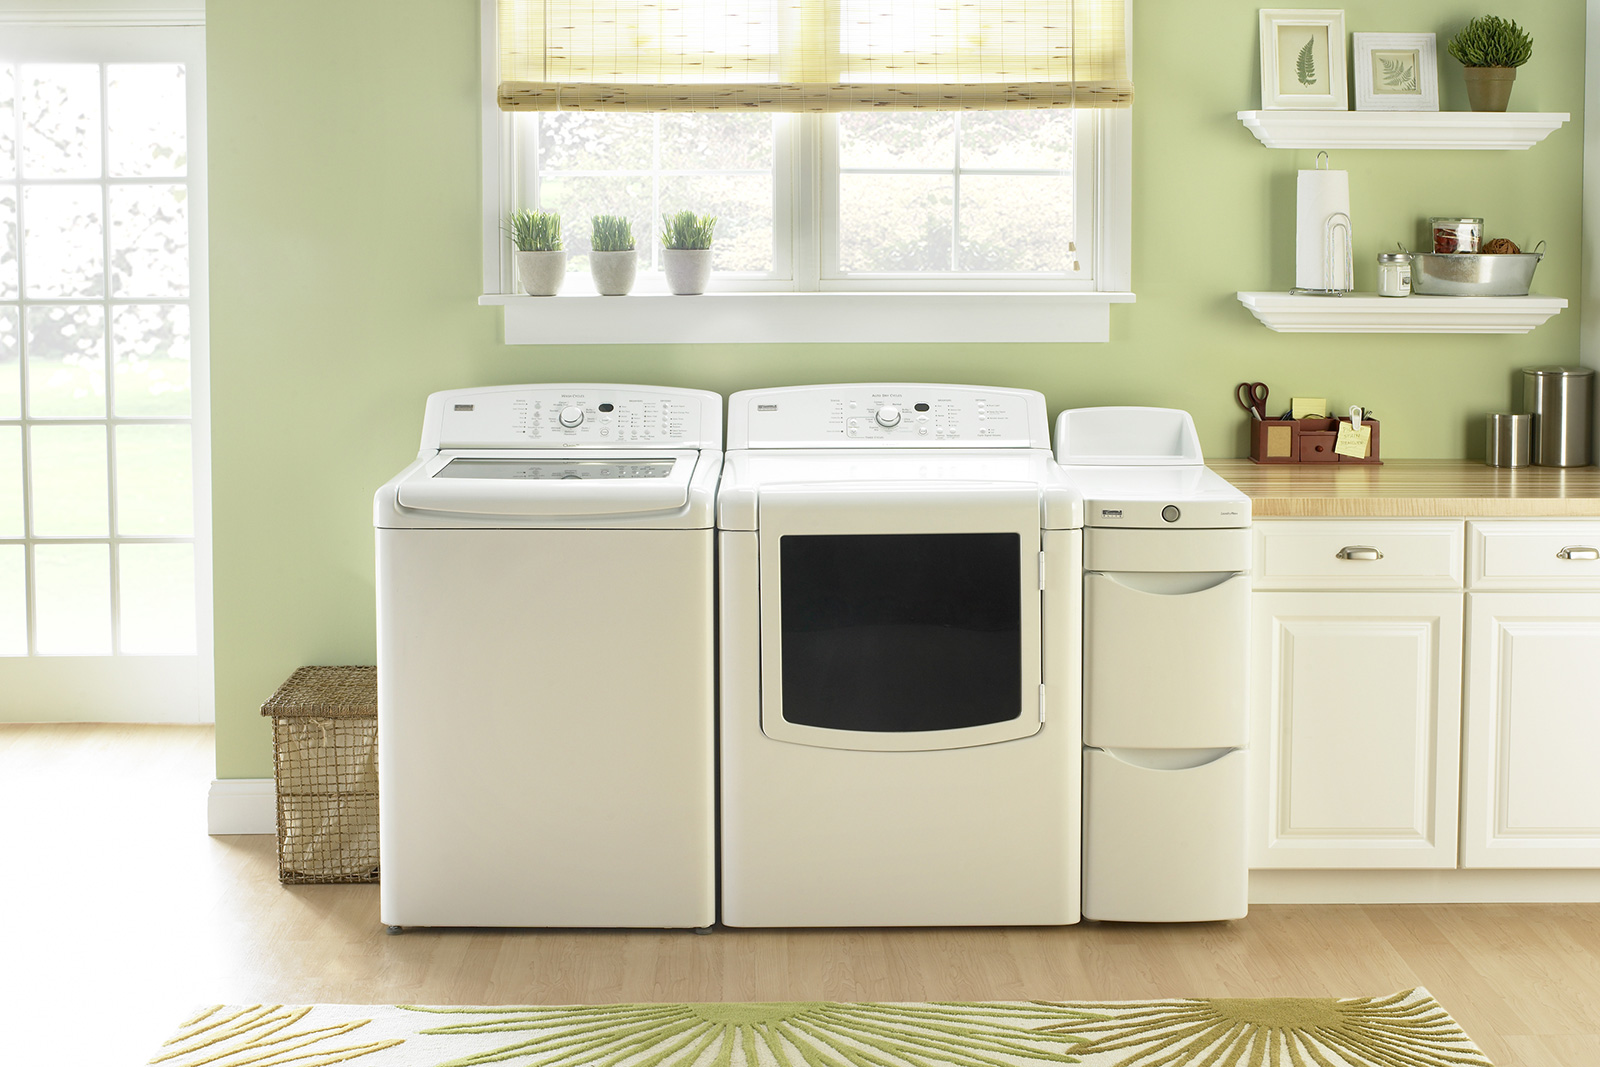 Buy Washer Washing Machine Buying Guide Houselogic